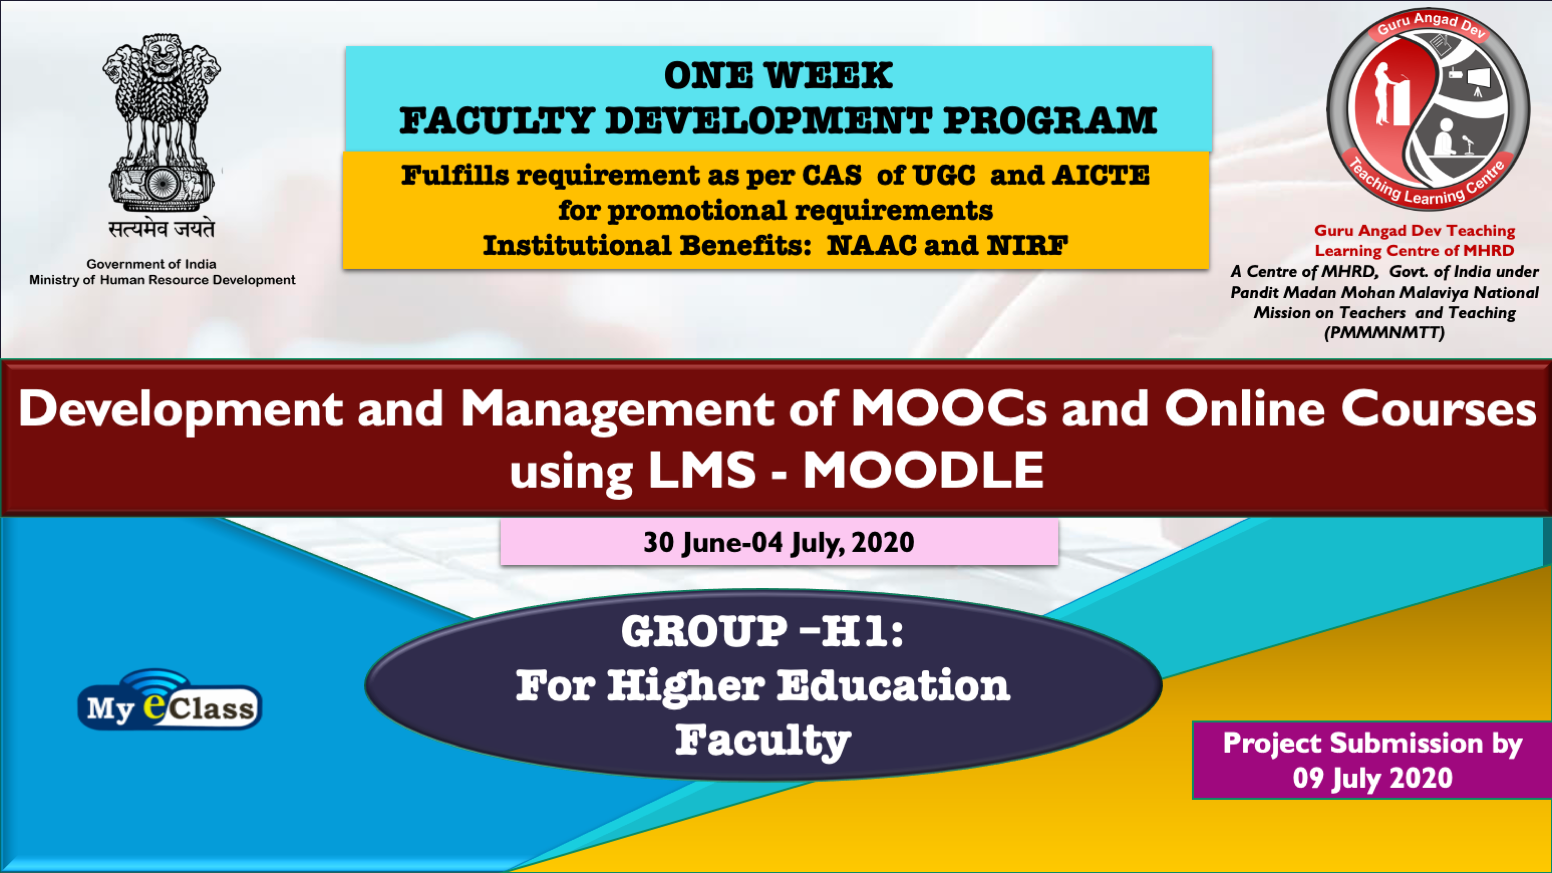 Course Image One Week FDP for Higher Education Faculty :Development and Management of MOOCs and Online Courses using LMS- MOODLE